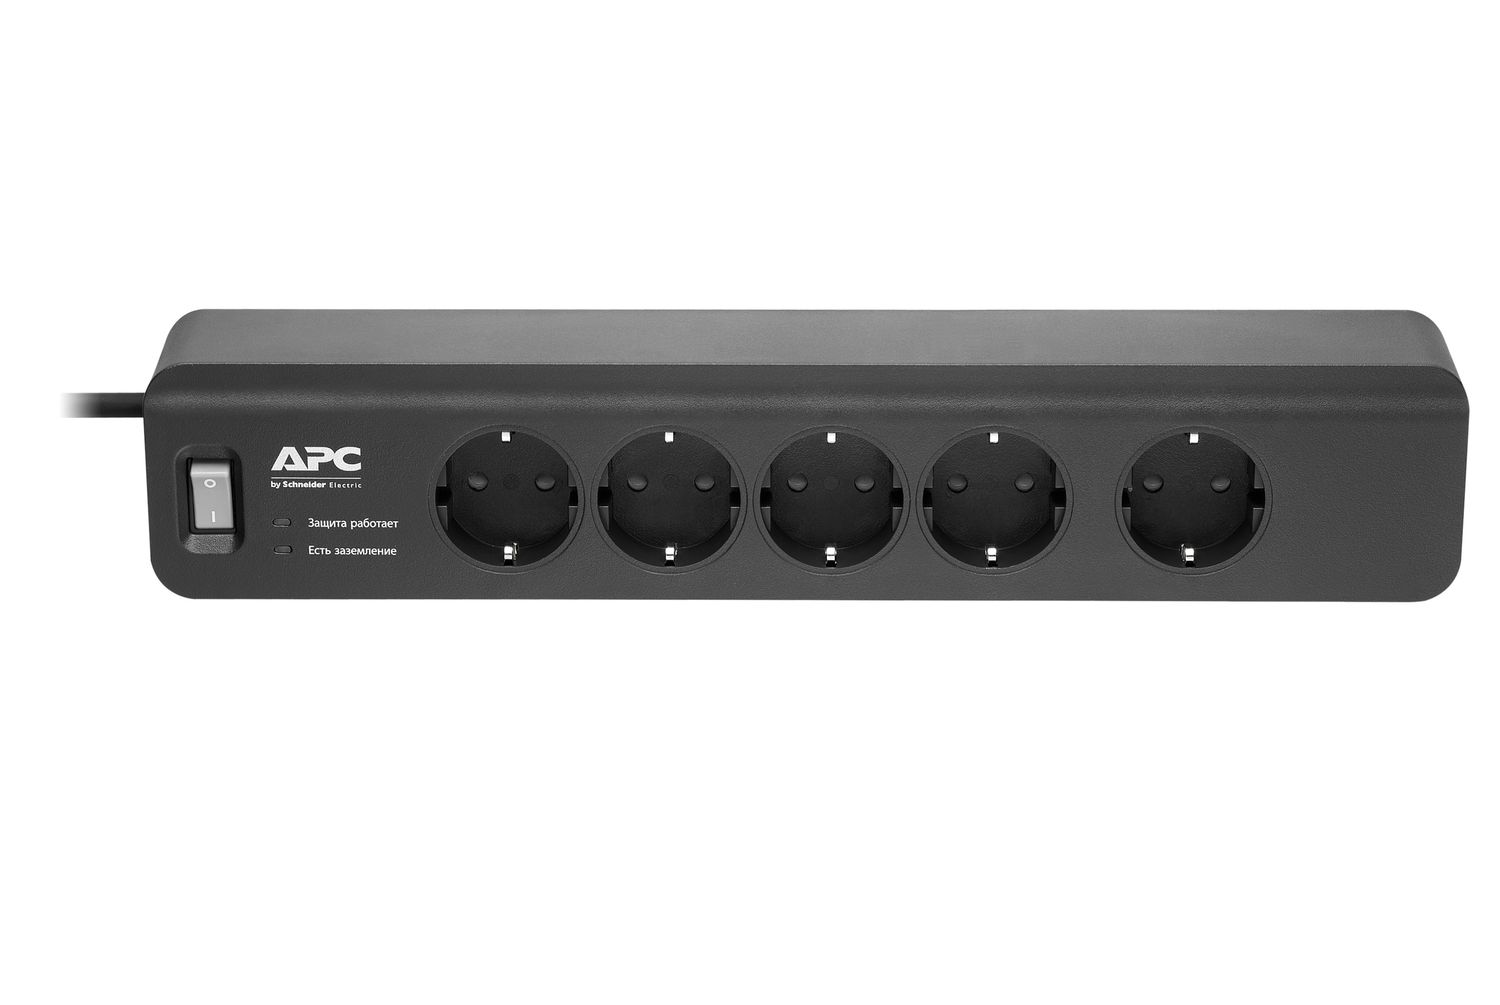 Сетевой фильтр APC Essential SurgeArrest 5 outlets 230V Russia (PM5B-RS) цена